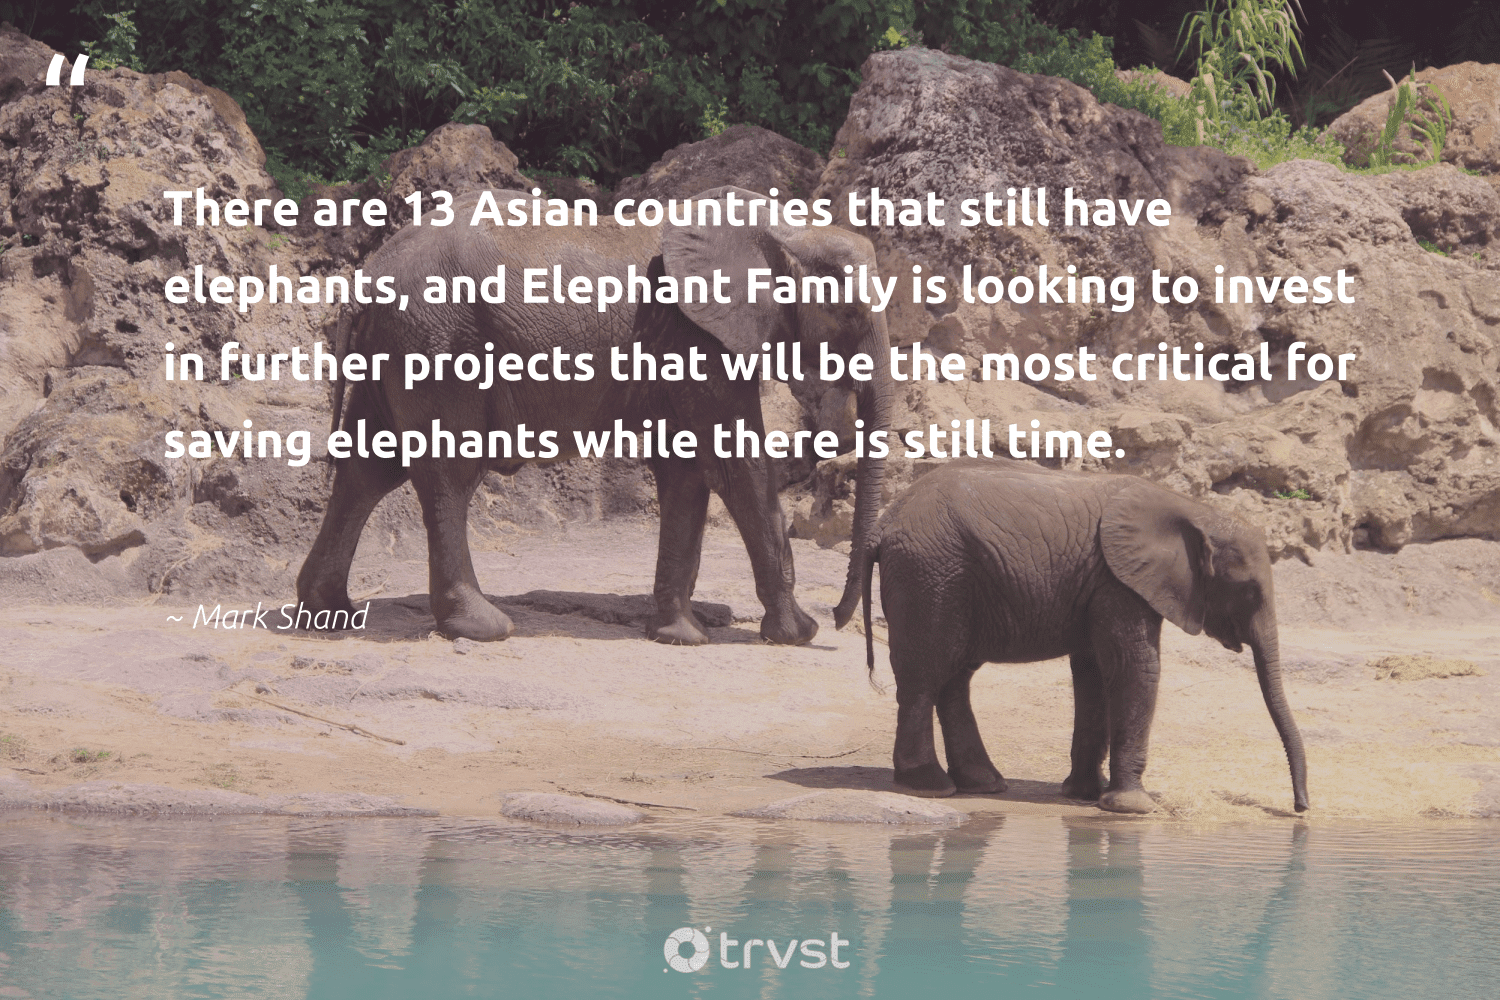 """""""There are 13 Asian countries that still have elephants, and Elephant Family is looking to invest in further projects that will be the most critical for saving elephants while there is still time.""""  - Mark Shand #trvst #quotes #family #elephants #explore #planetearthfirst #elephantlove #gogreen #animals #impact #wildanimals #socialchange"""